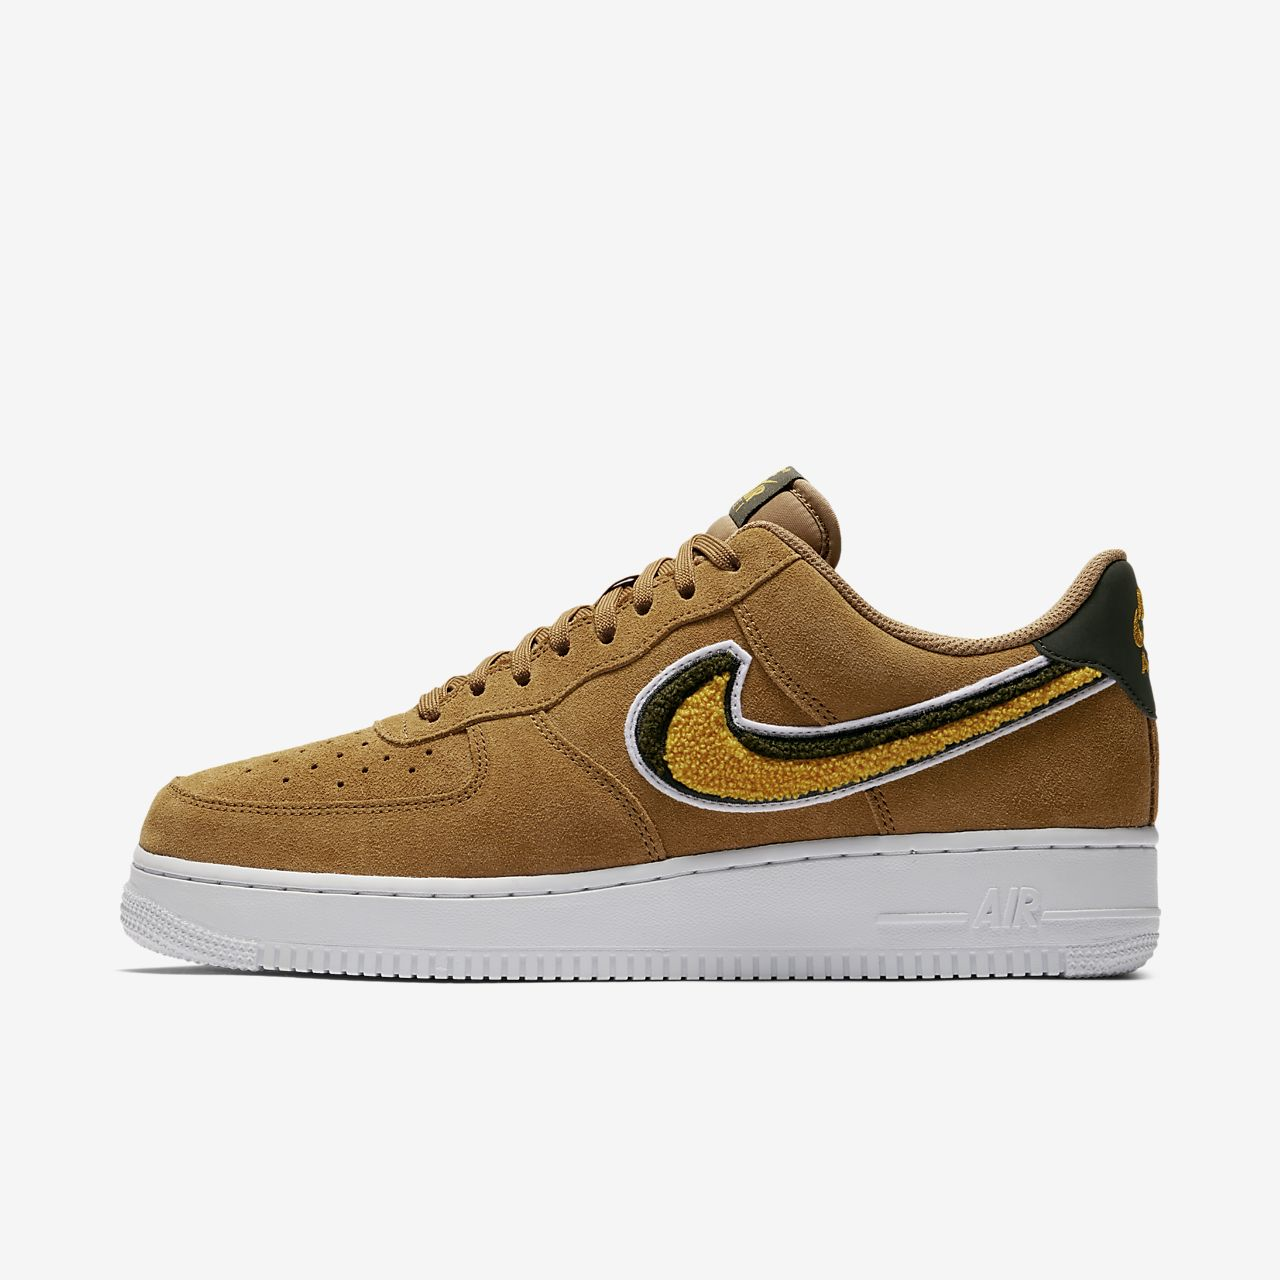 Nike Air Force 1 Low Ch 07 Lv8 Hombres Ch Low a50c95